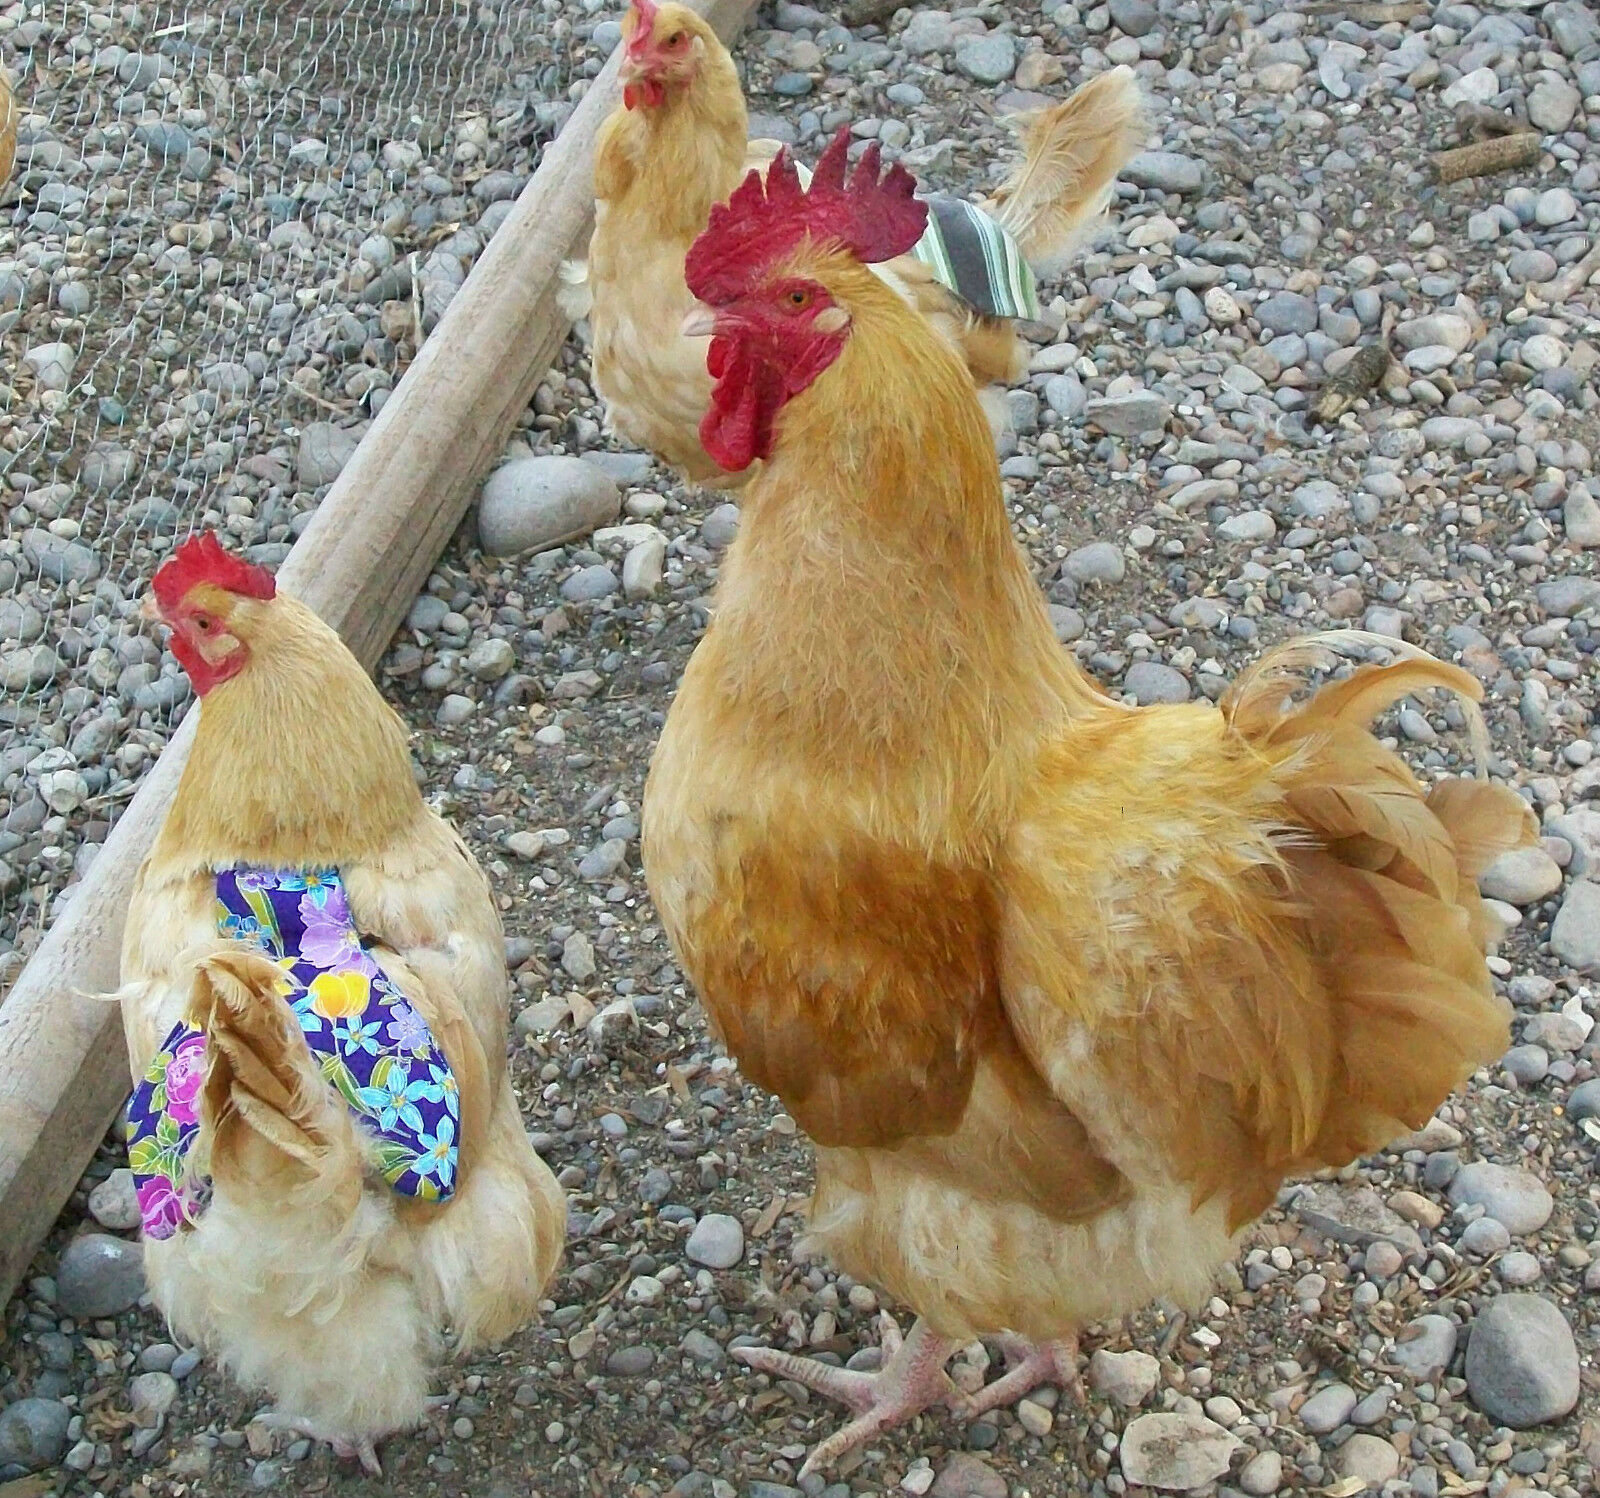 2 DELUXE W TAIL CHICKEN SADDLE APRON HEN FEATHER Bantam Silkie HATCHING EGGS